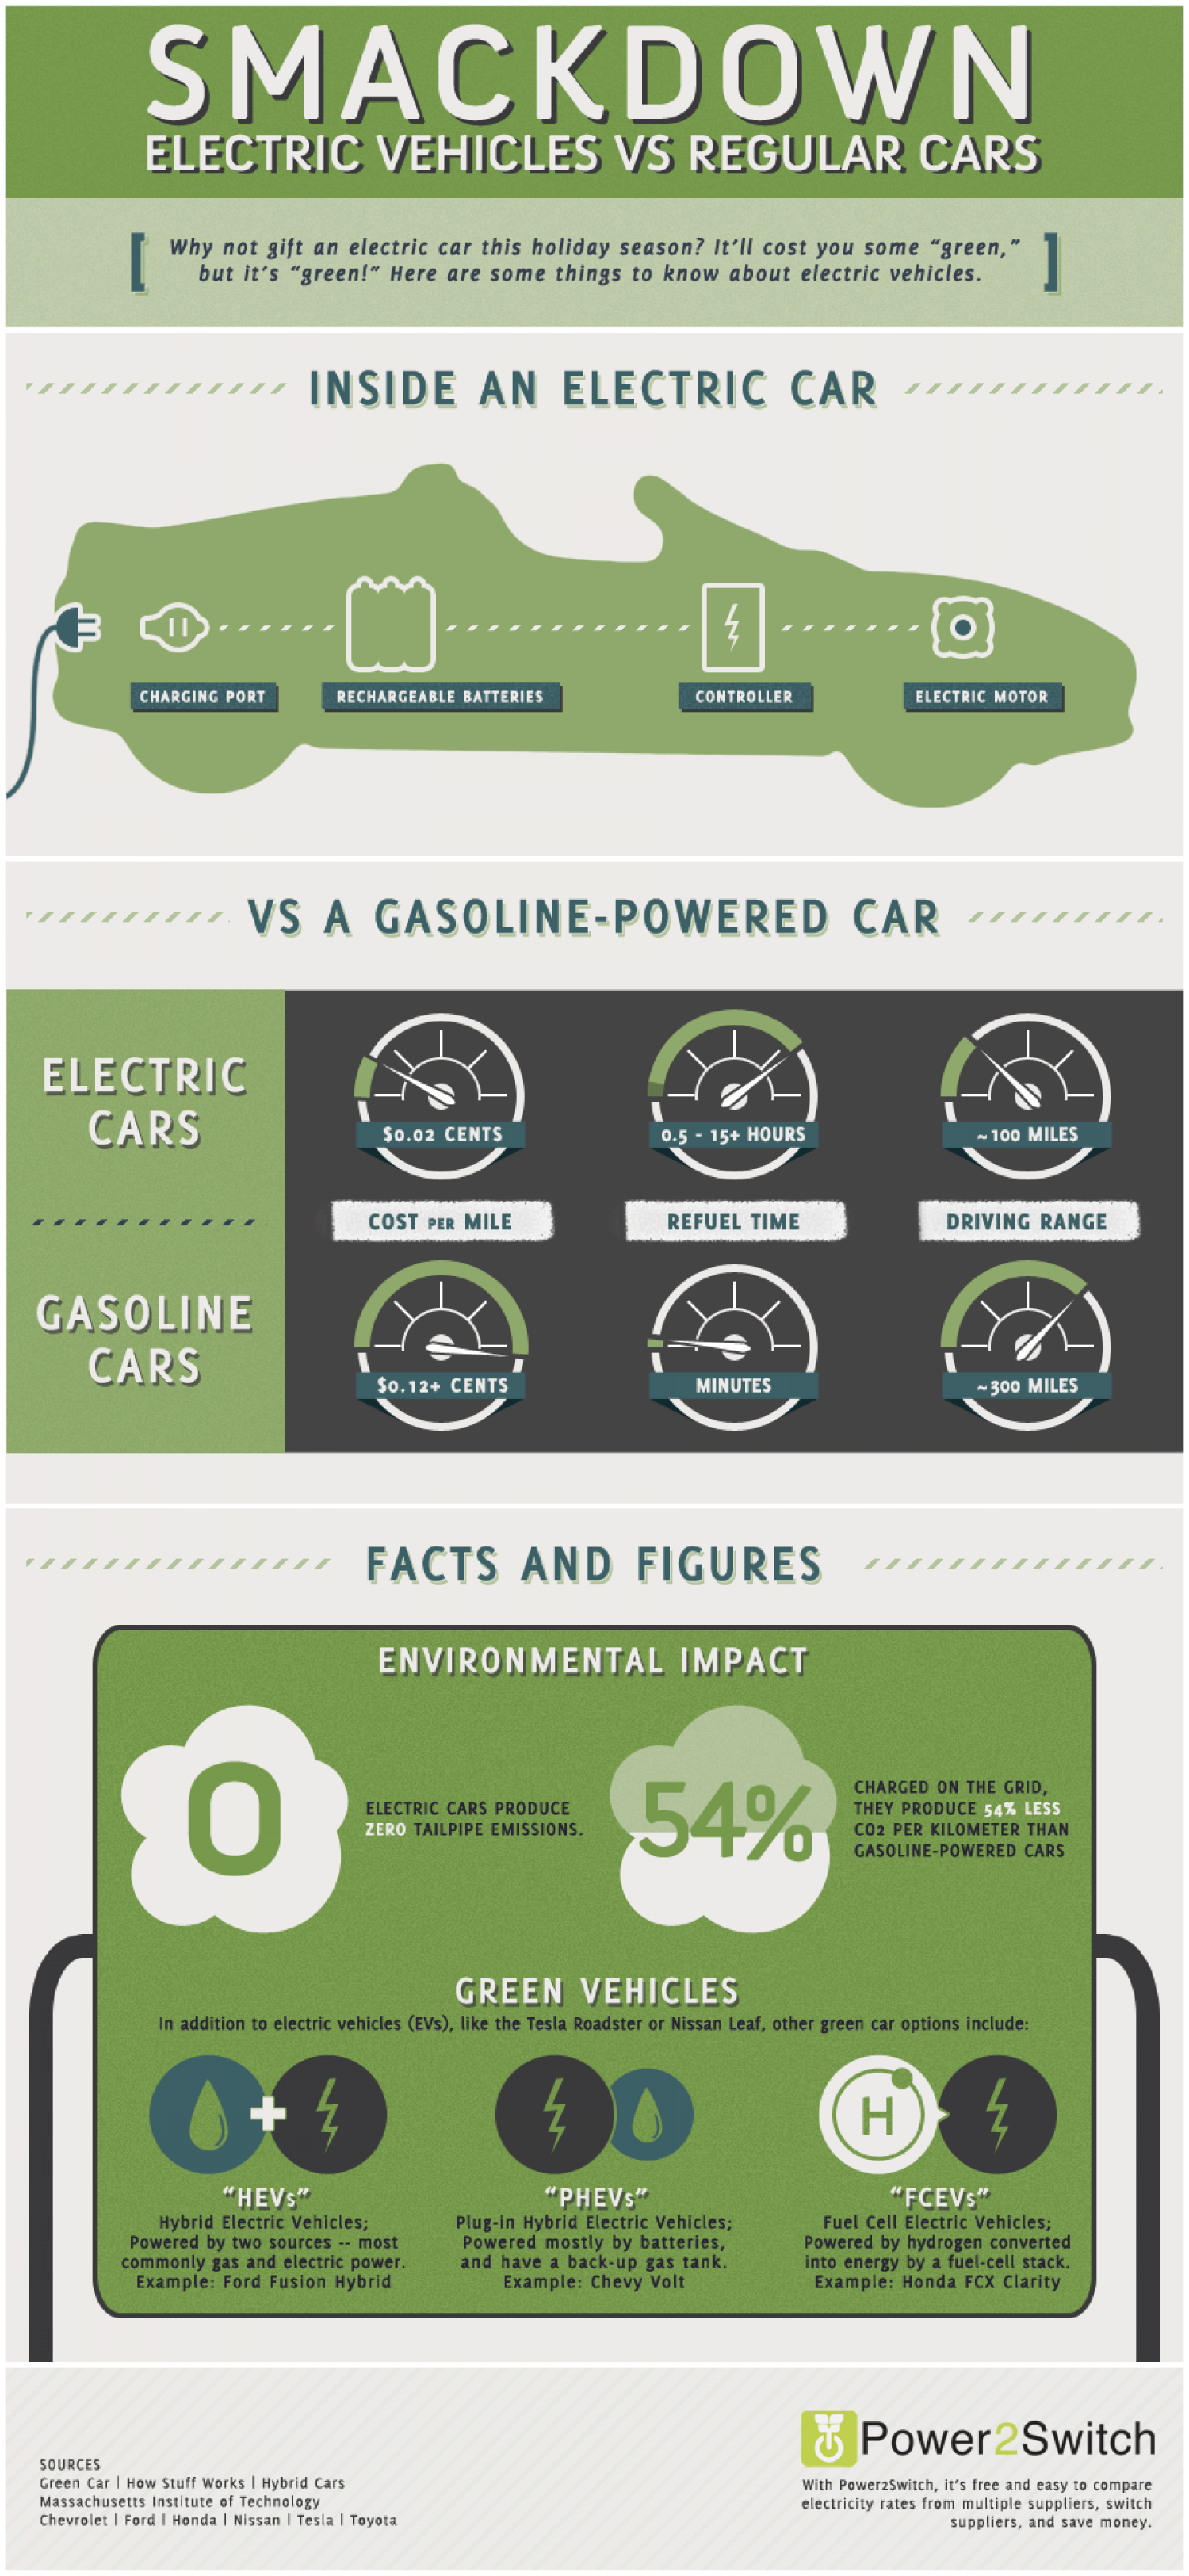 How Much Do Electric Cars Cost Compared To Normal Cars